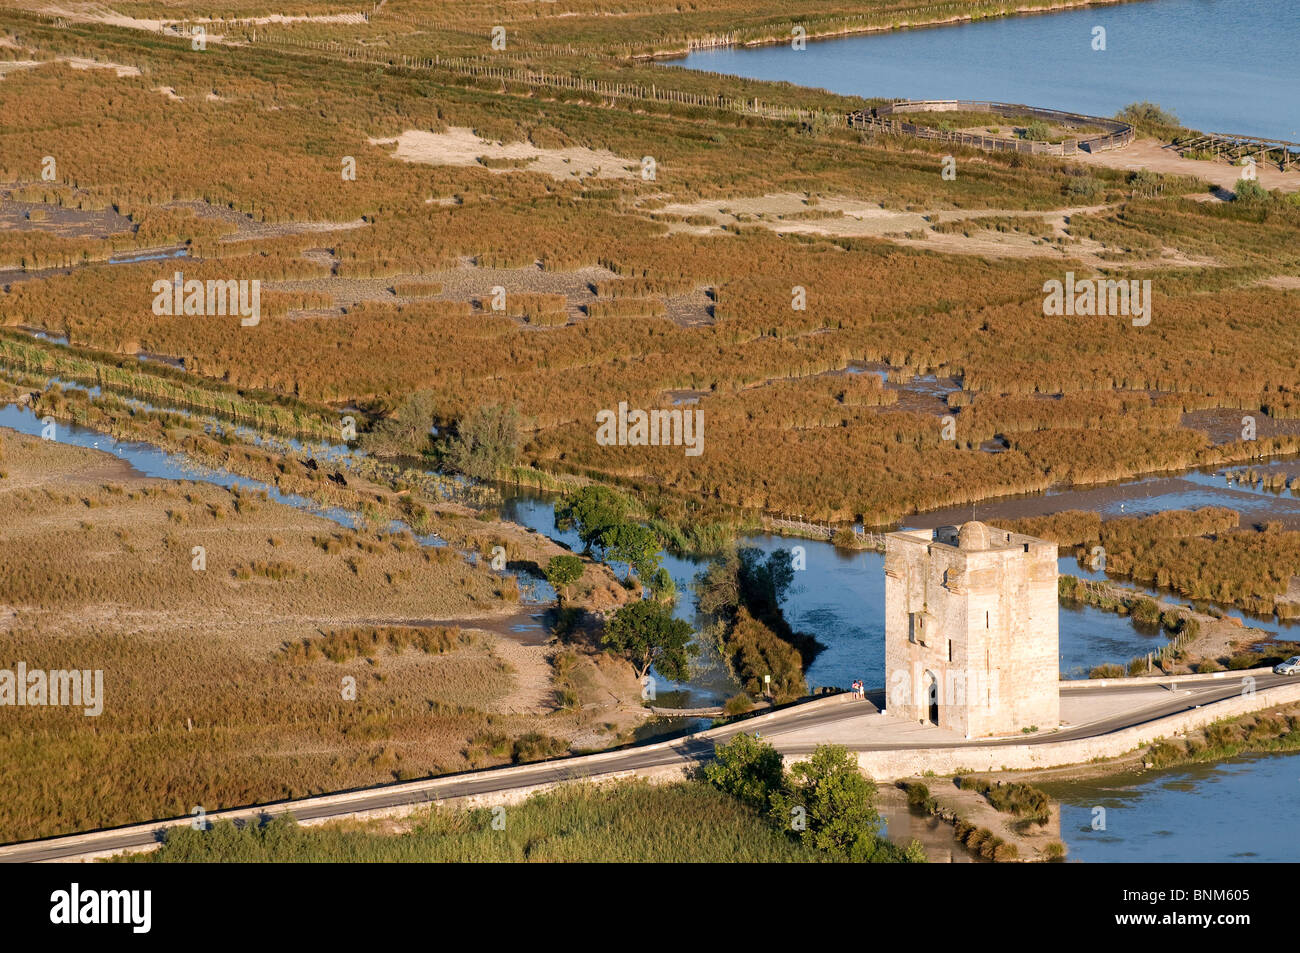 France Camargue Department Gard Aigues Mortes old town aerial view city wall from above aerial photo Tour Carbonnière - Stock Image